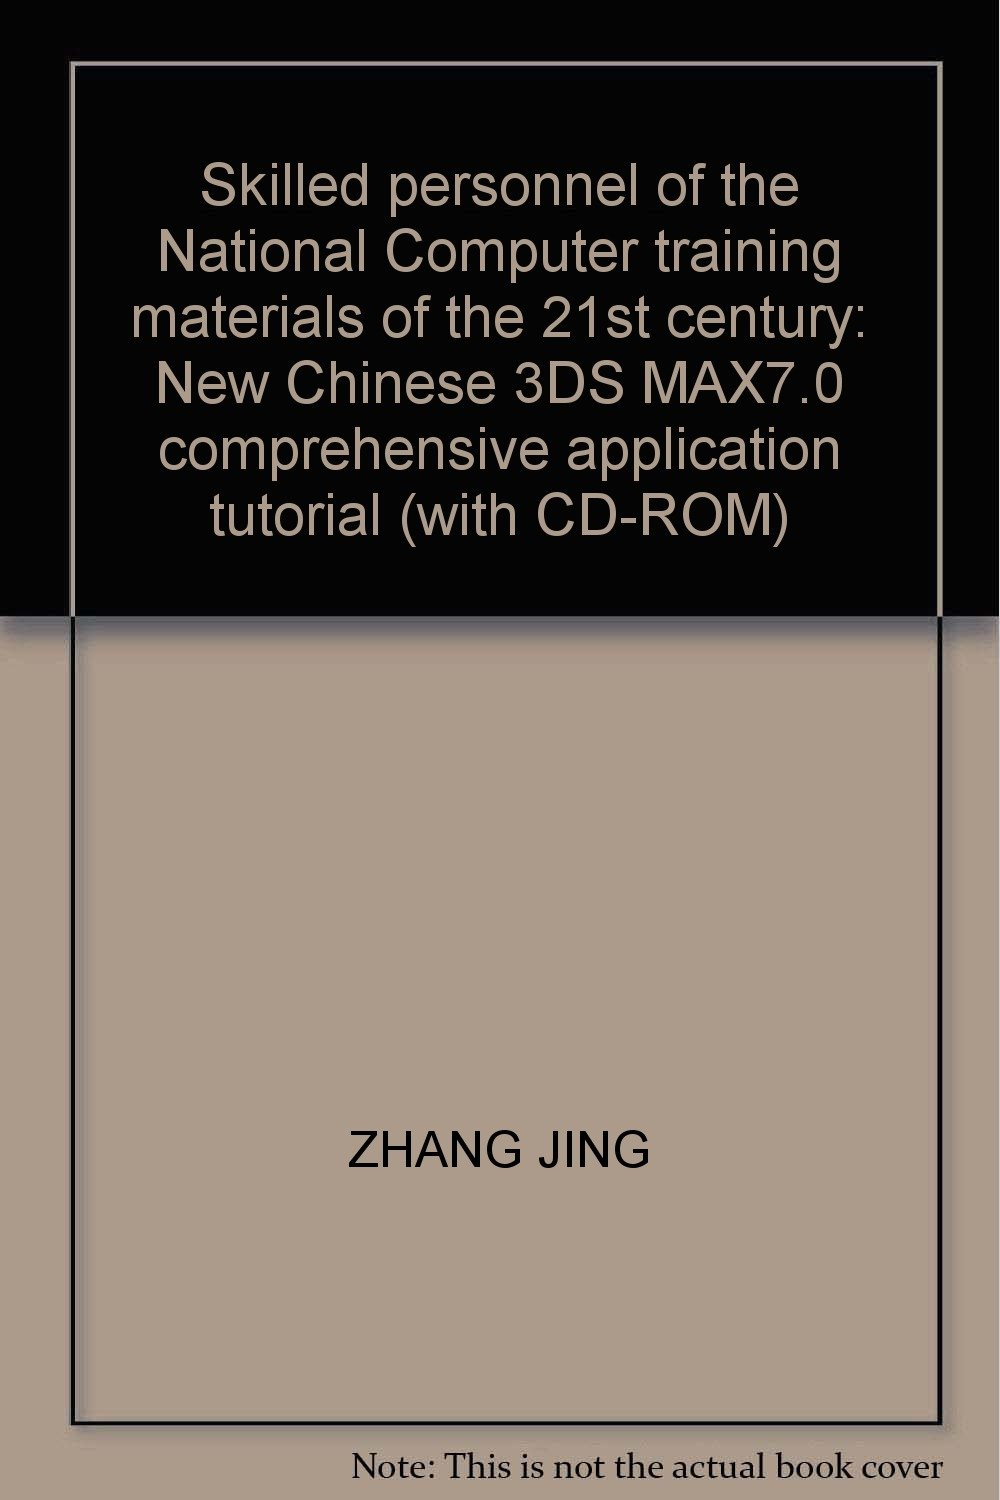 Skilled personnel of the National Computer training materials of the 21st century: New Chinese 3DS MAX7.0 comprehensive application tutorial (with CD-ROM) ebook